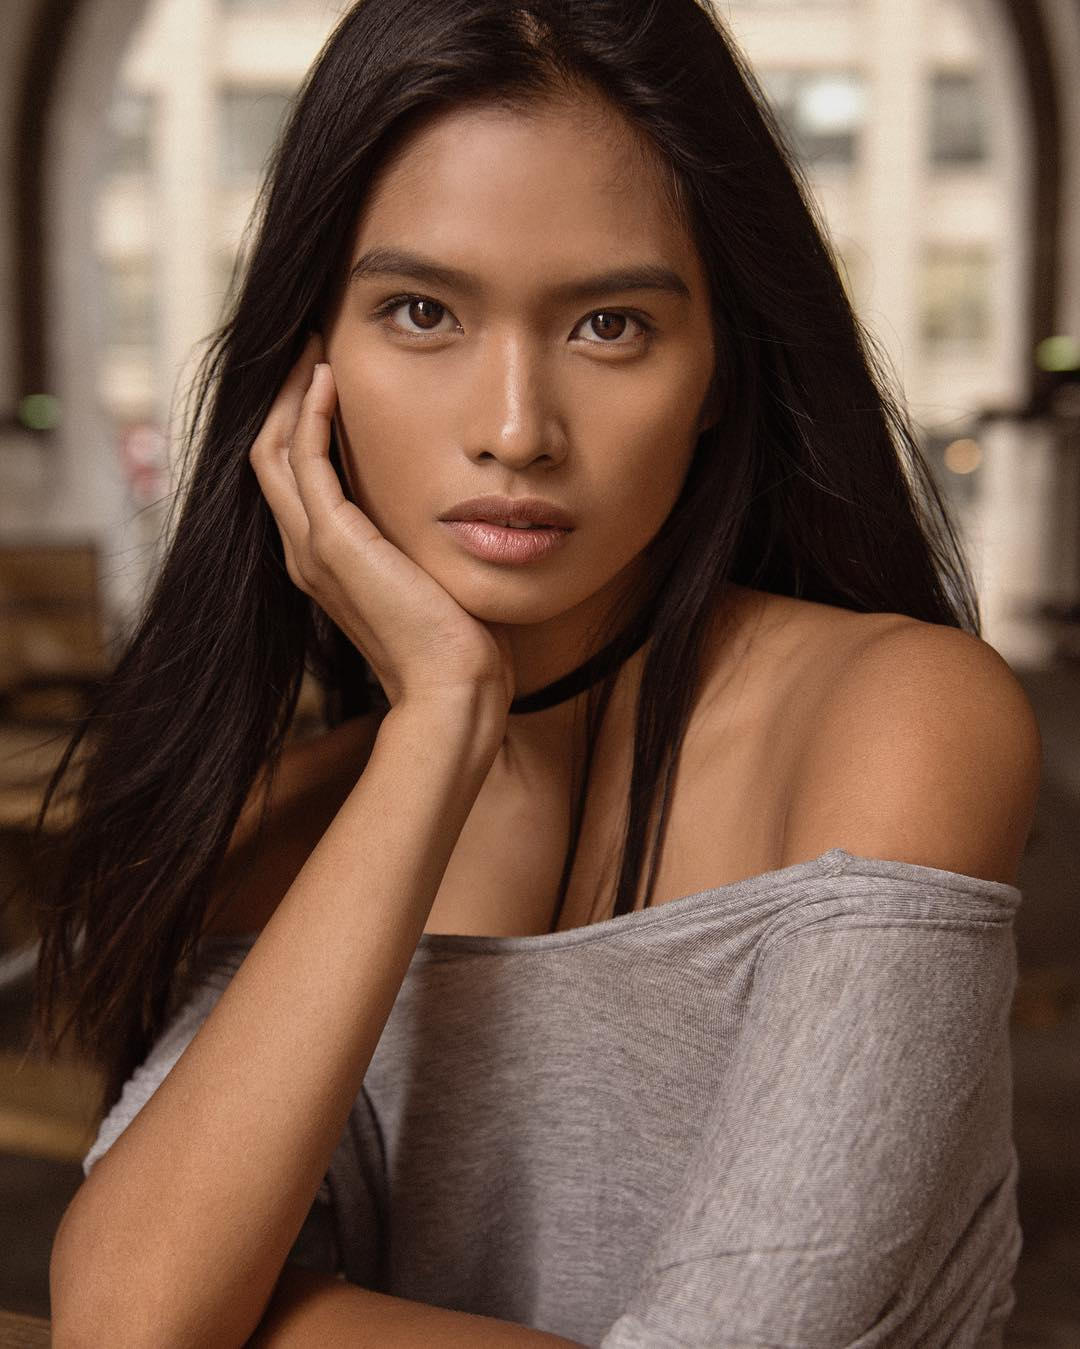 Hot Pictures Janine Tugonon naked photo 2017